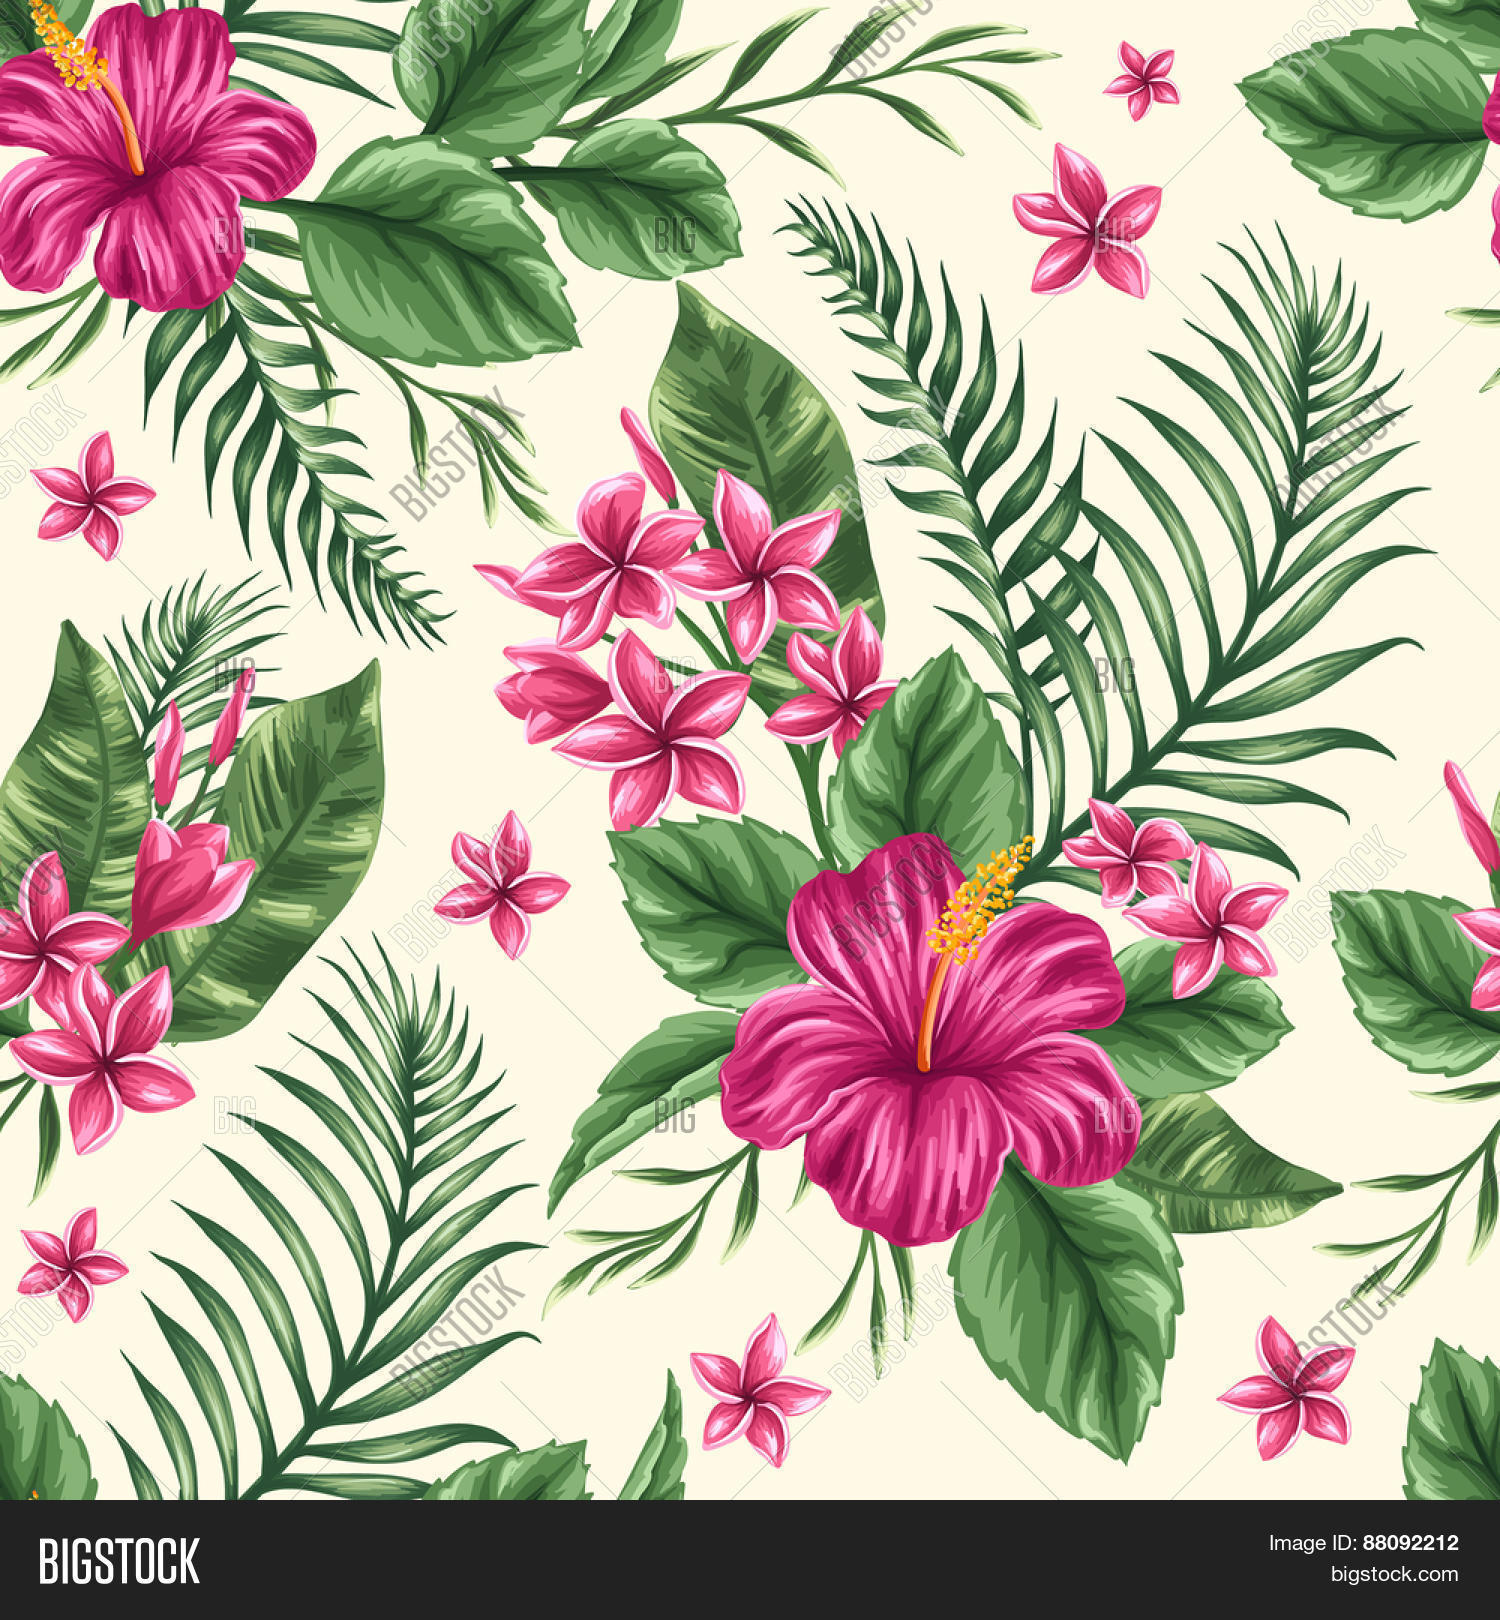 Tropical Floral Vector Photo Free Trial Bigstock